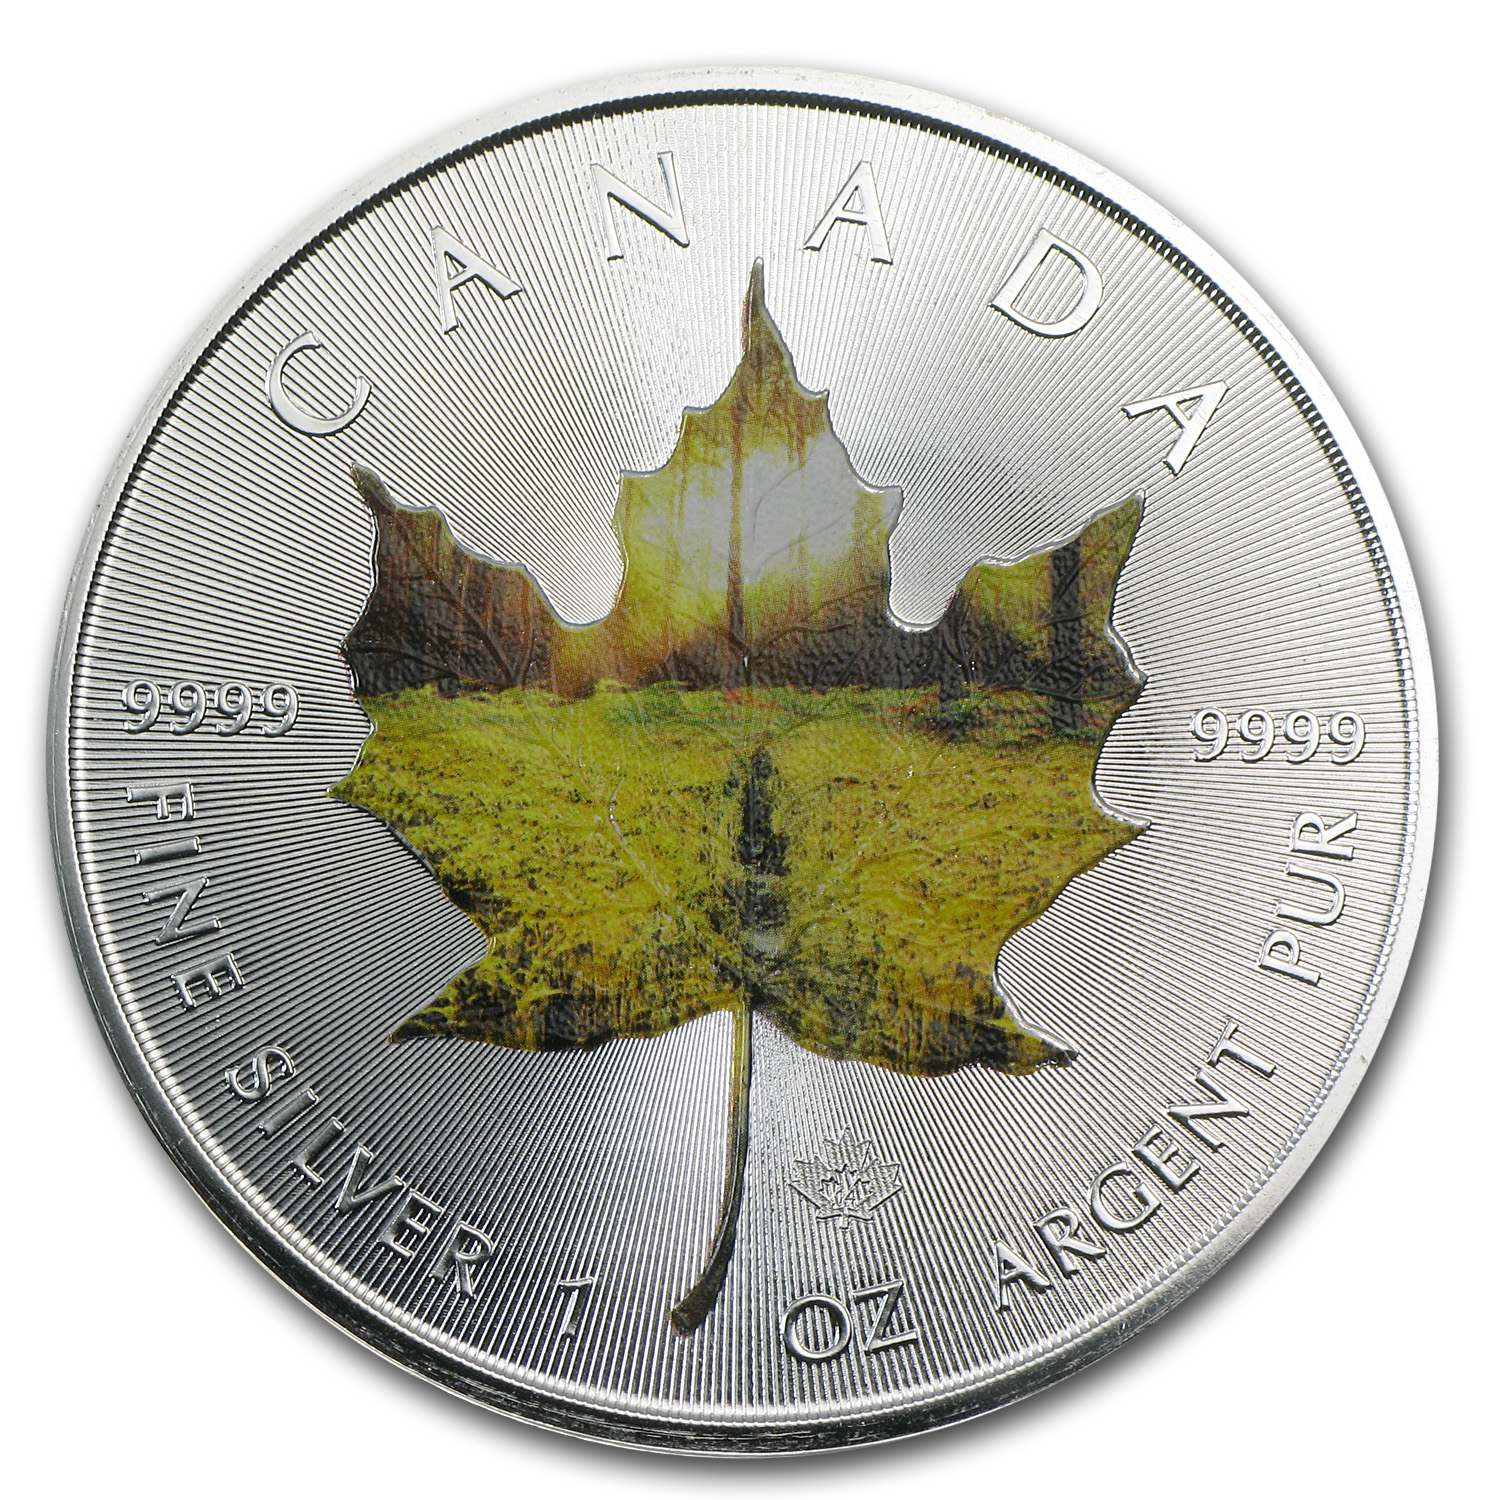 2014 Canada 1 oz Silver Maple Leaf Summer Landscape